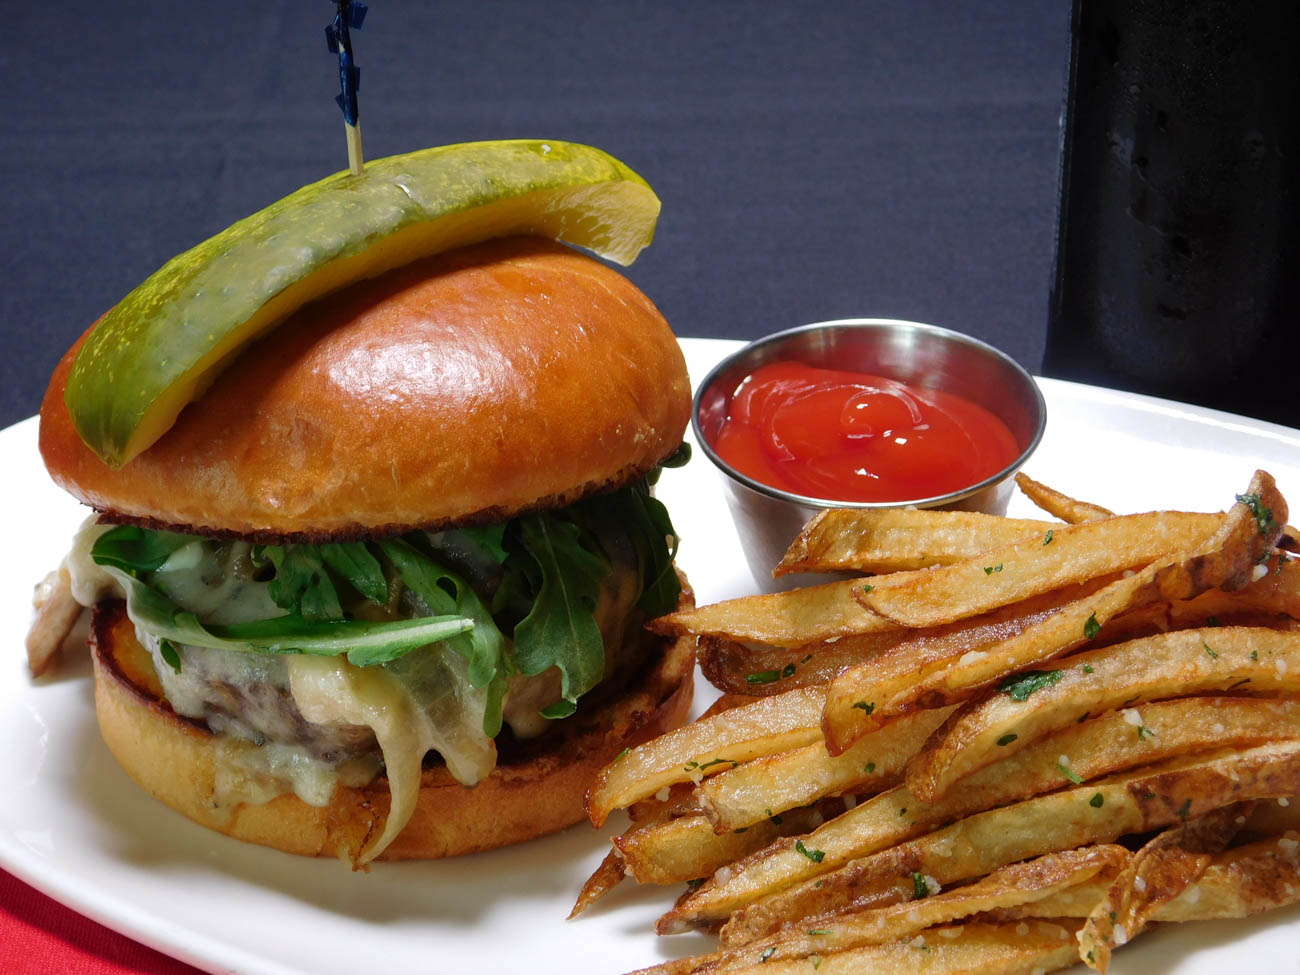 FIRE's Umami Burger: swiss cheese, caramelized bourbon mushroom, onion, truffle mayo, and arugula on a brioche bun{ }/ Image courtesy of RiverCenter Entertainment // Published: 6.20.19